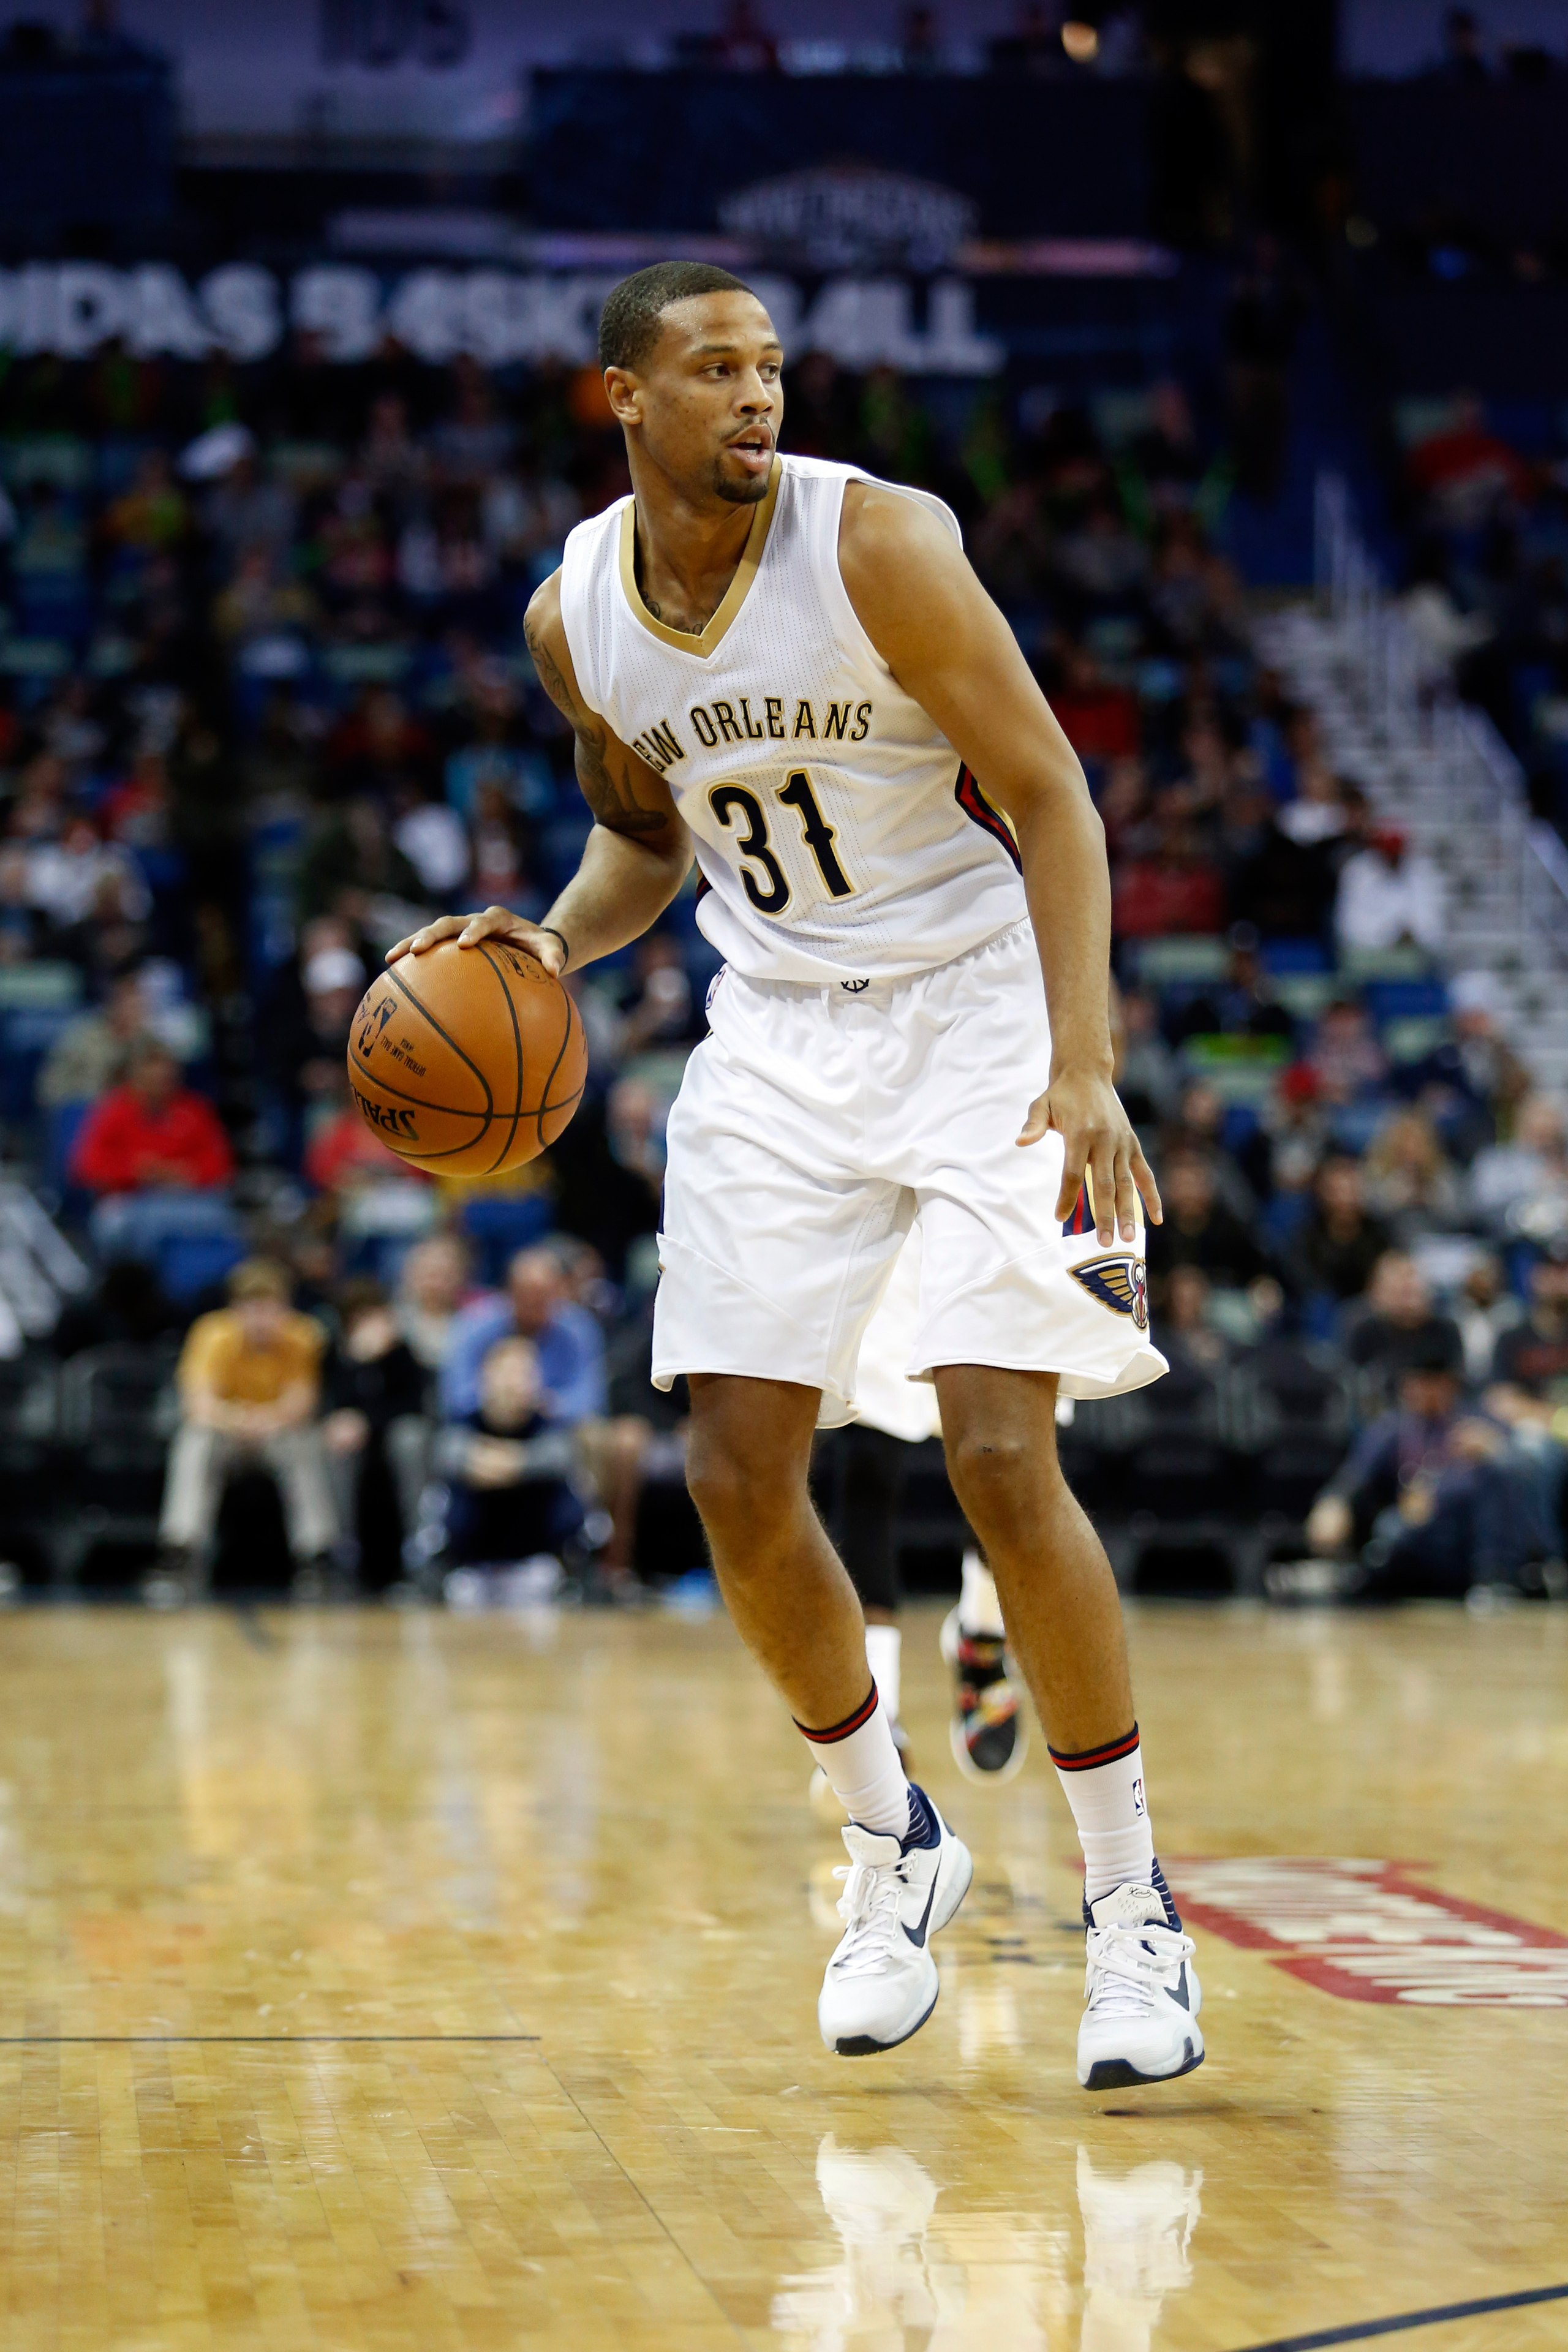 New Orleans Pelicans guard Bryce Dejean-Jones during the first half of an NBA basketball game against the Utah Jazz in New Orleans on Feb. 10, 2016.